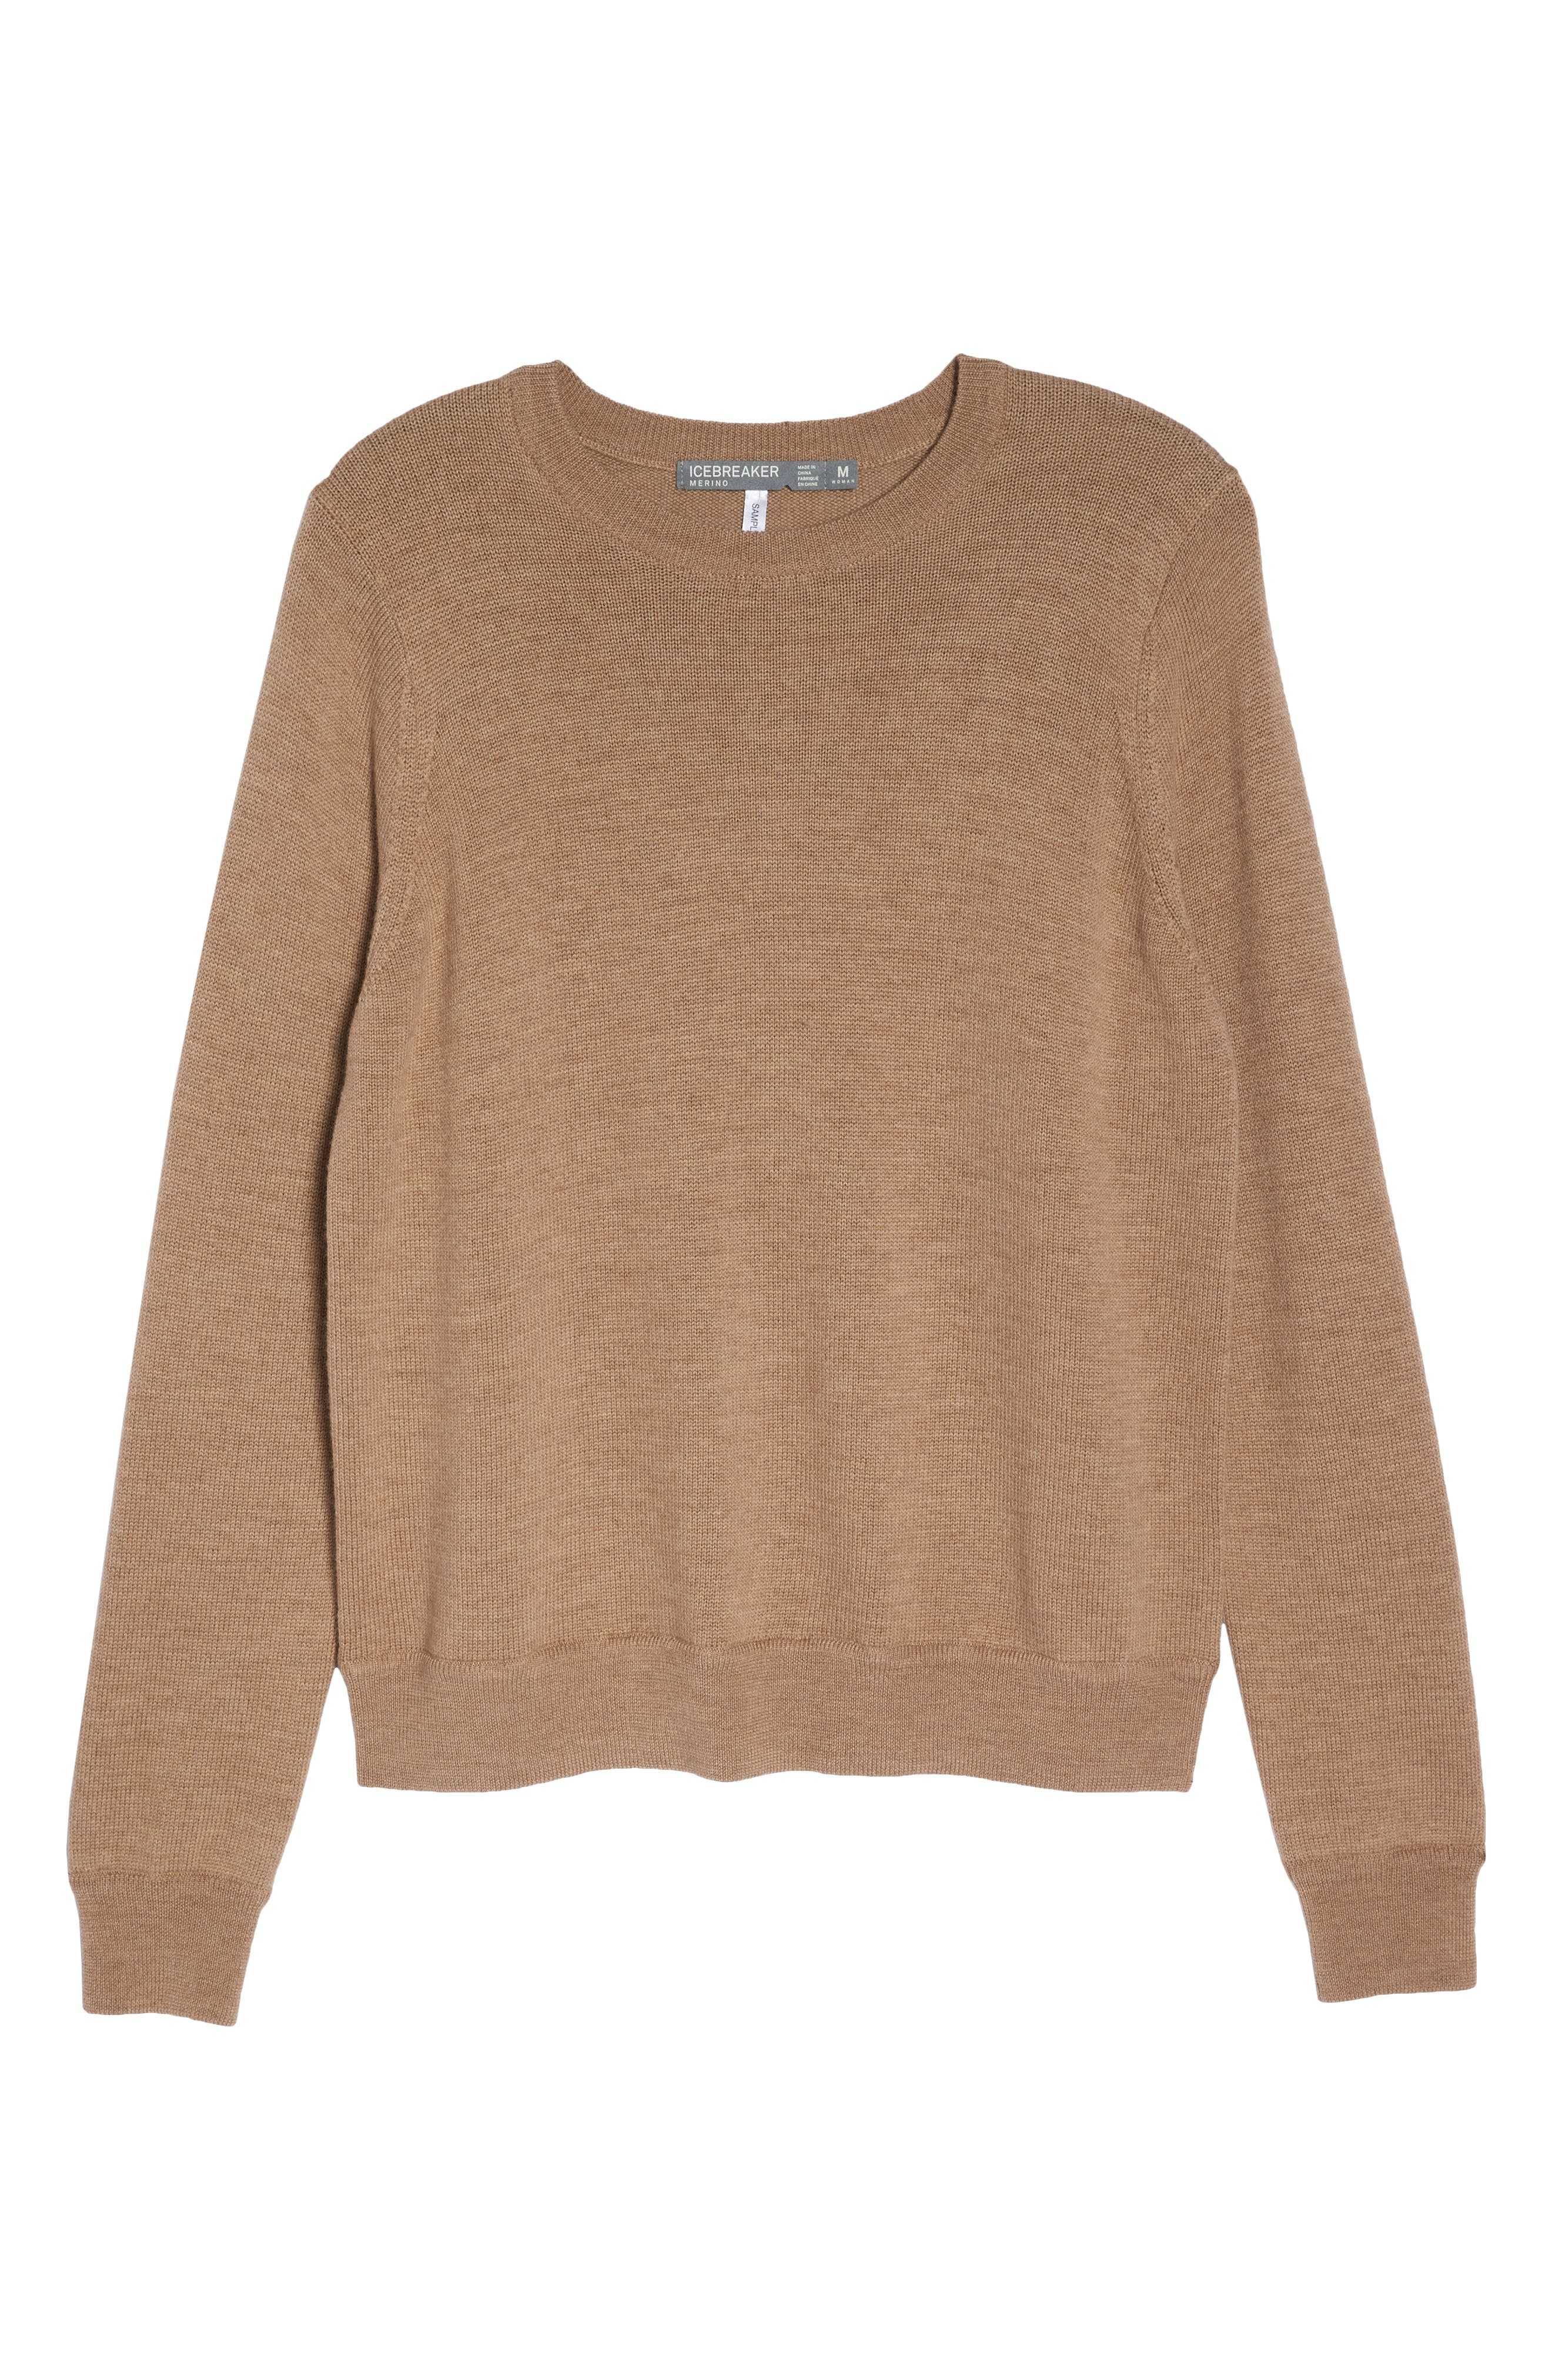 Muster Merino Wool Sweater,                             Alternate thumbnail 7, color,                             CAMEL HEATHER